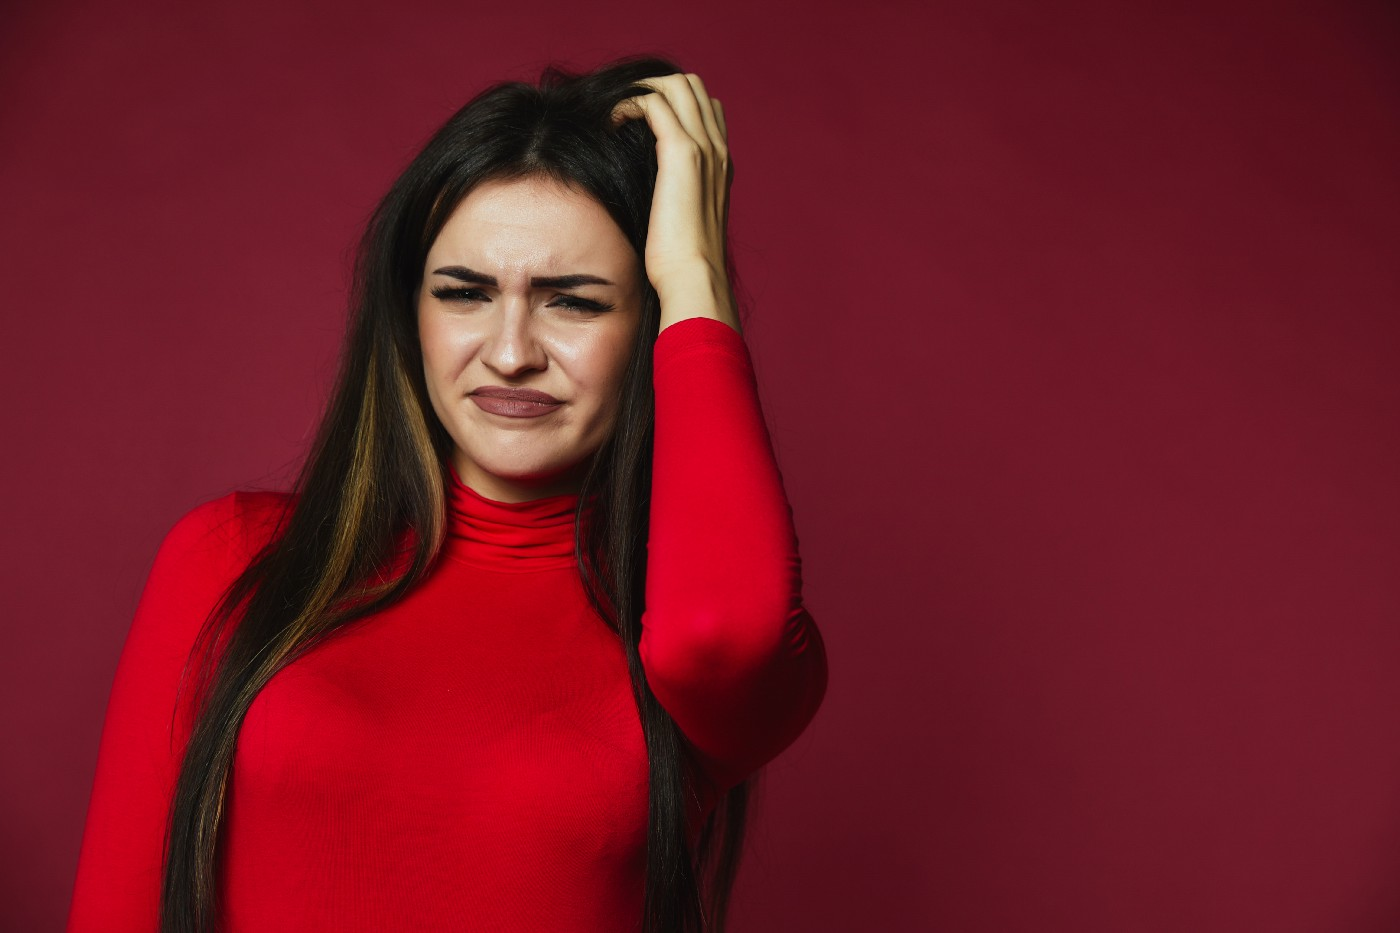 Woman, confused and frustrated by one-sided, unbalanced friendship